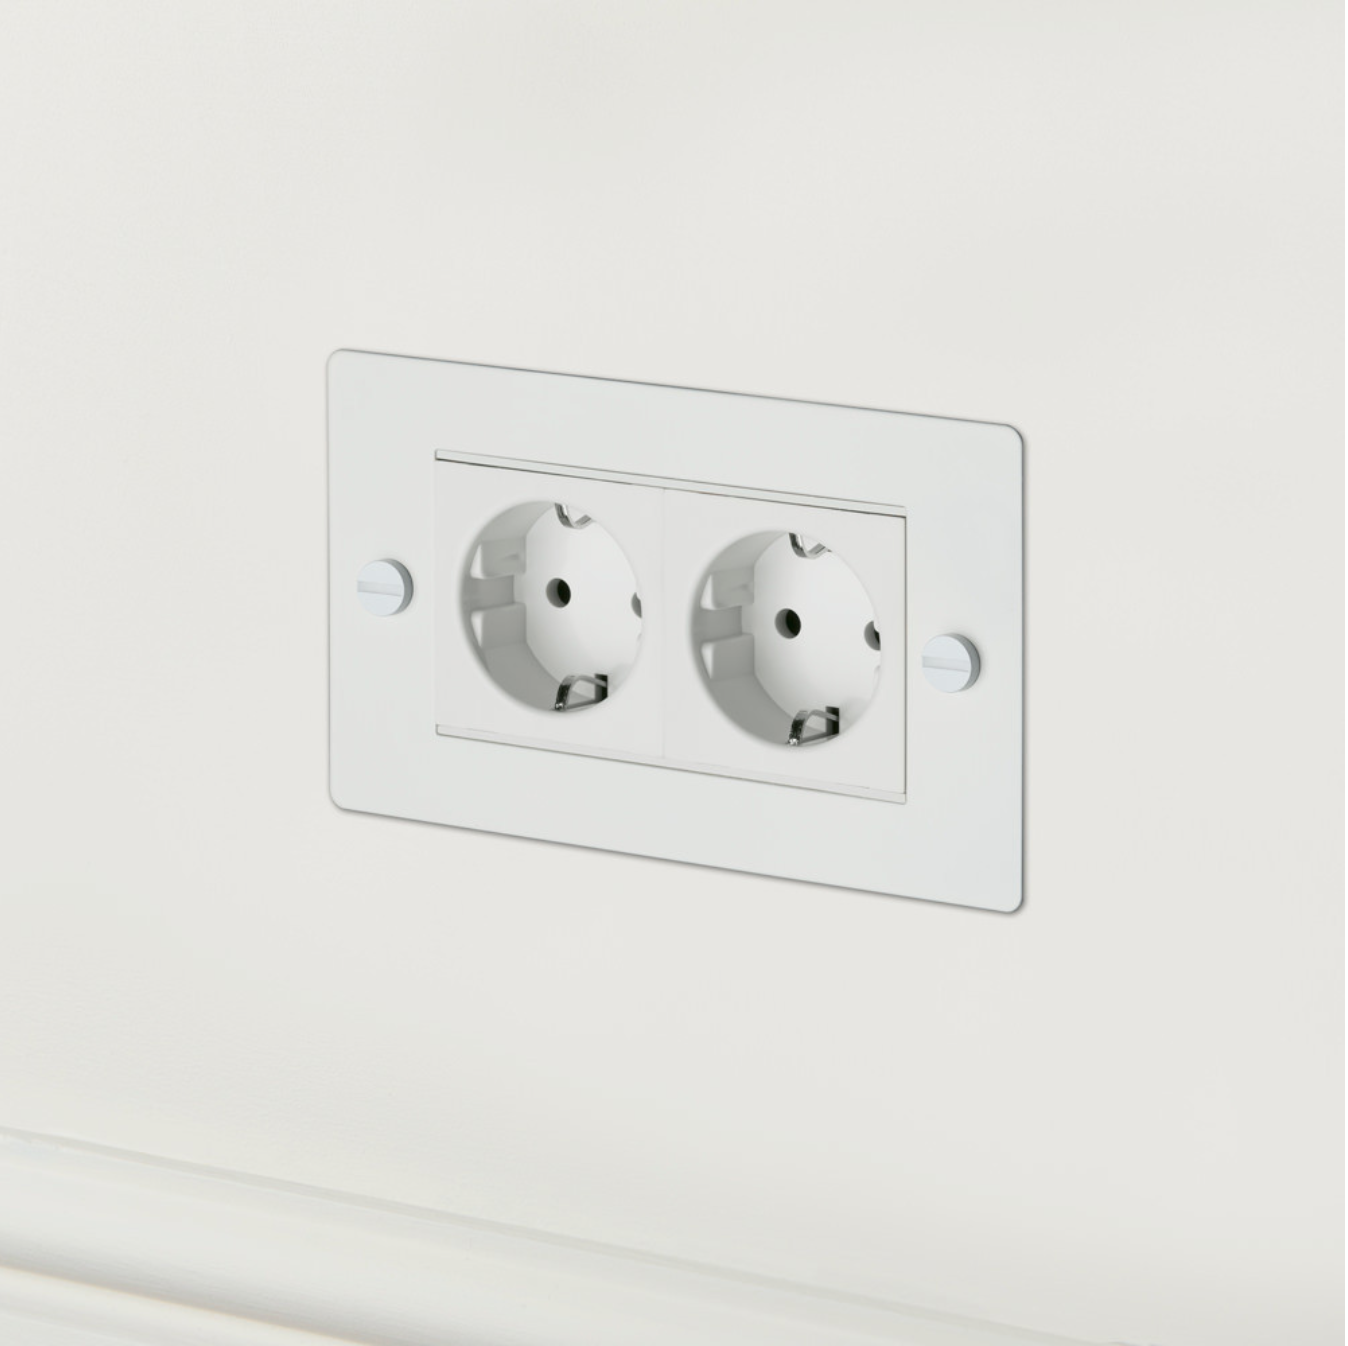 Pin By Skekk On Light Switches Amp Power Plugs